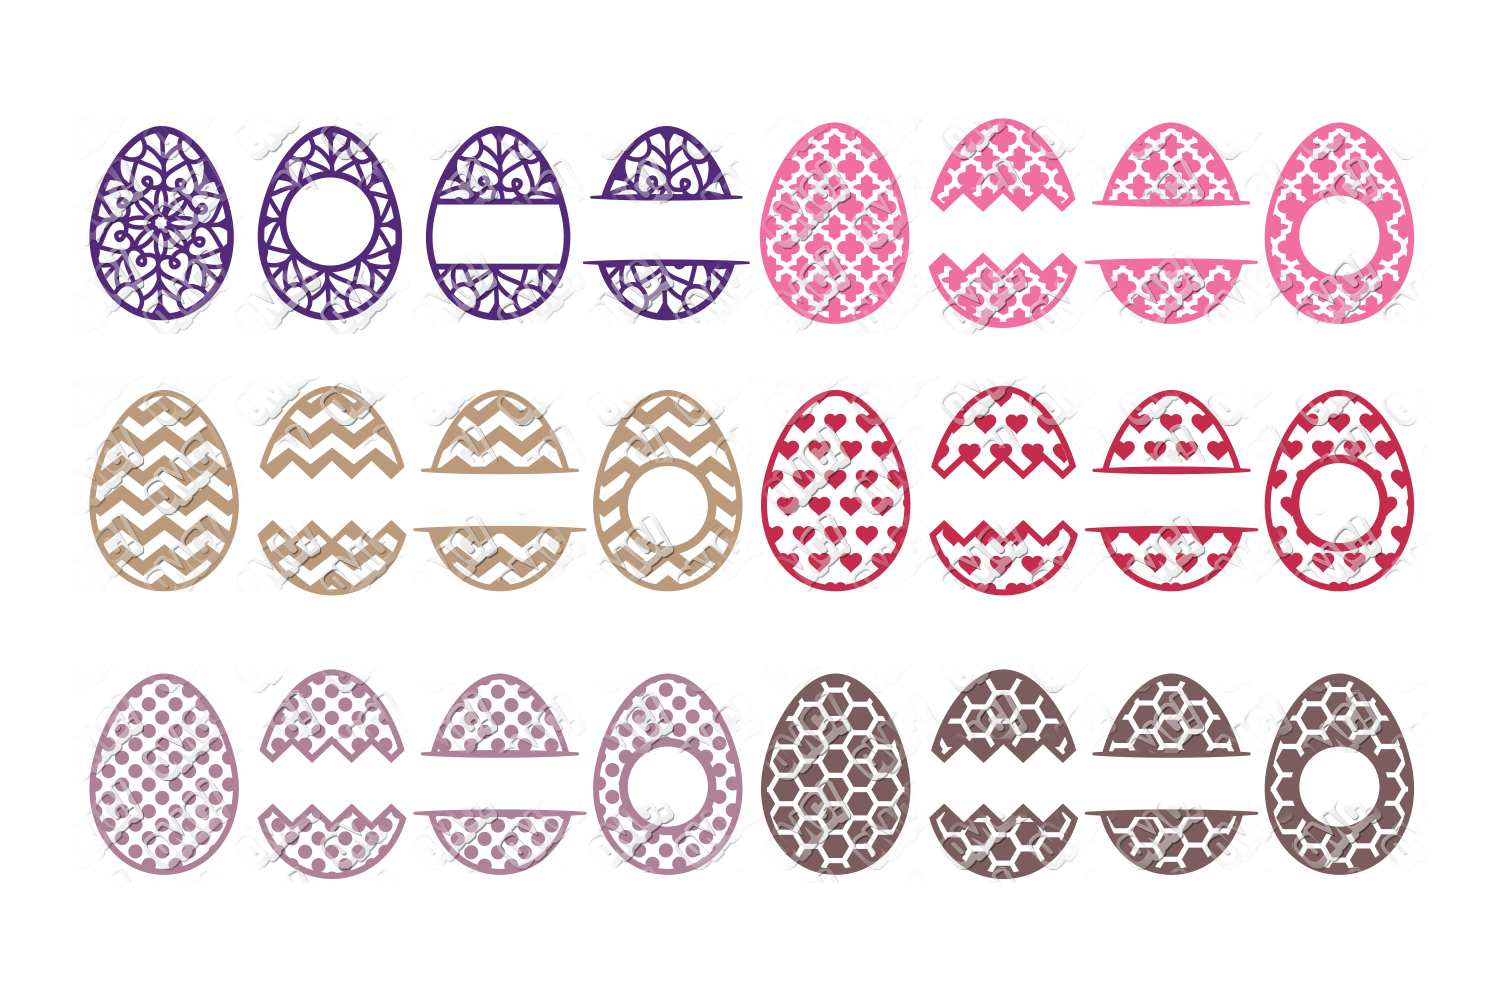 Easter Egg SVG Monogram Quotes in SVG, DXF, PNG, EPS, JPEG example image 5